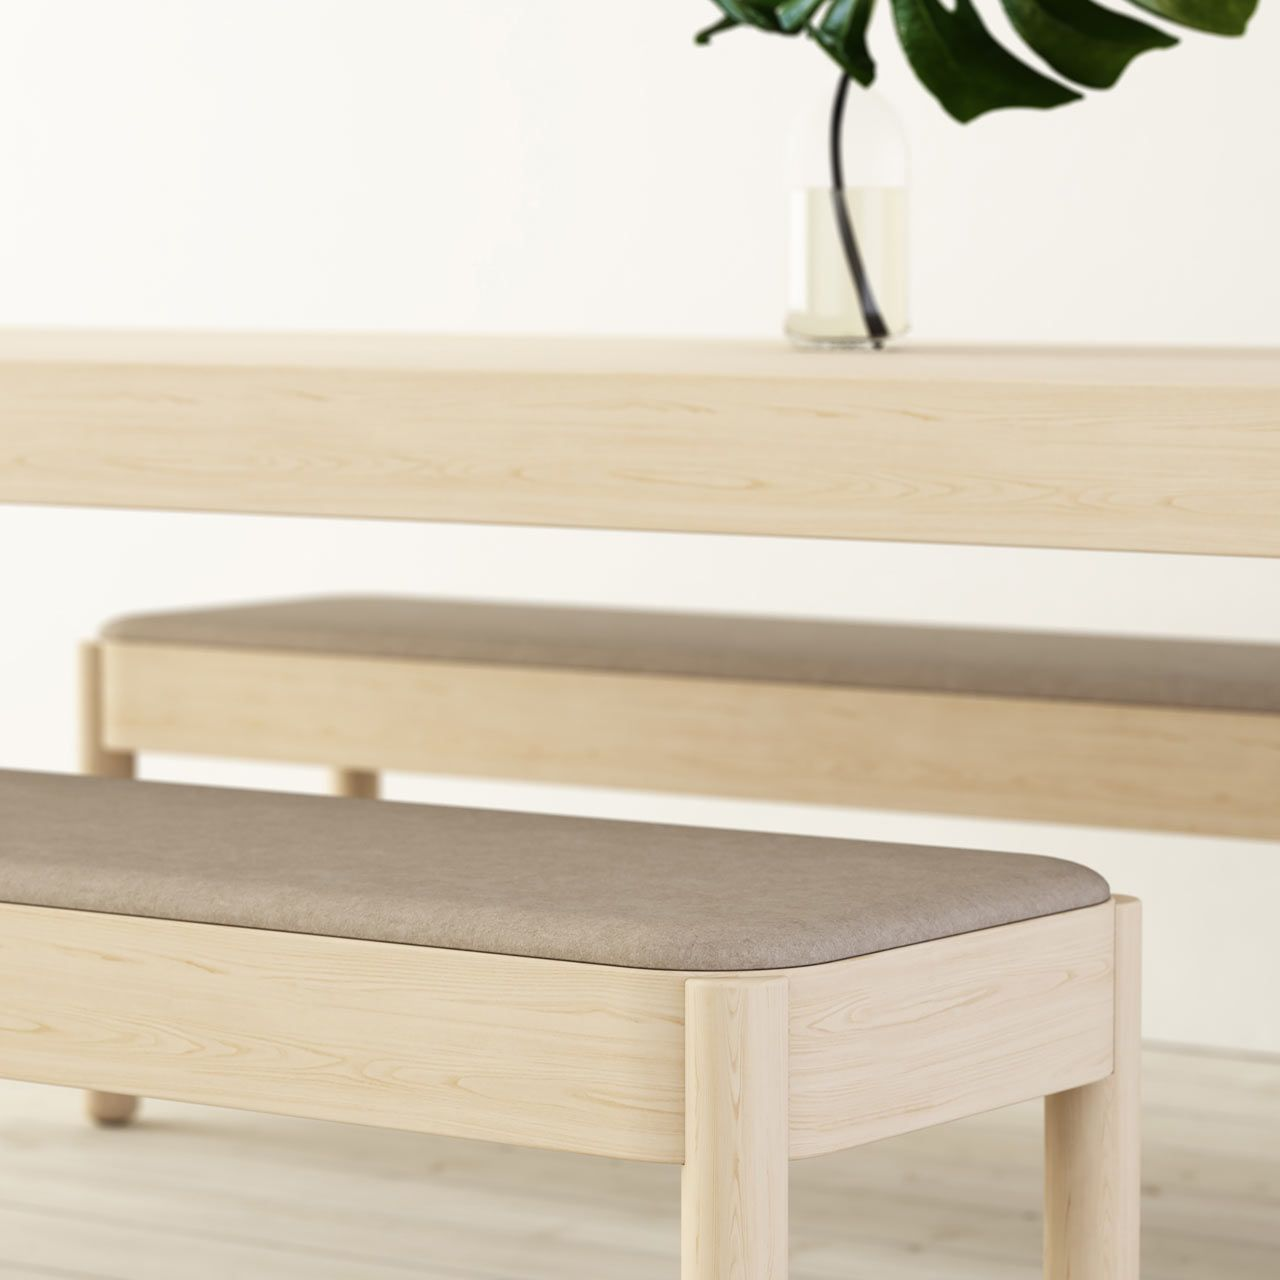 light wood furniture exclusive. Wakufuru Brings Sound Absorption To Wood Tables And Benches Light Furniture Exclusive E